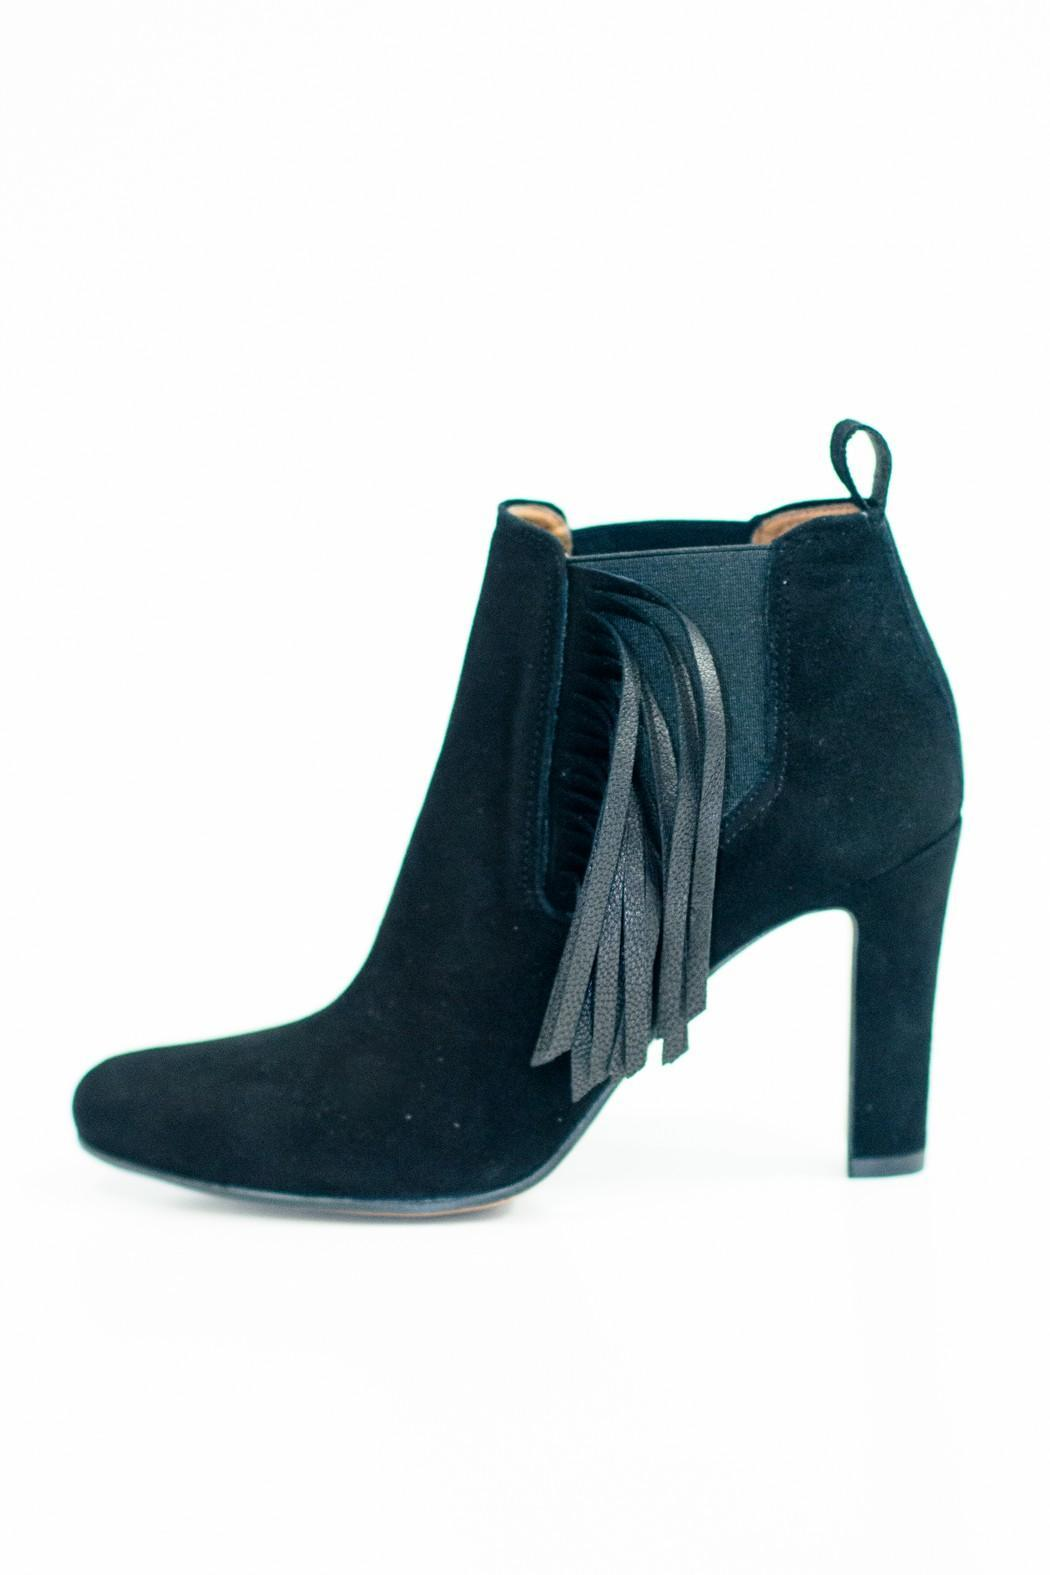 Bianca Di Fringe Ankle Booties Black - Front Cropped Image